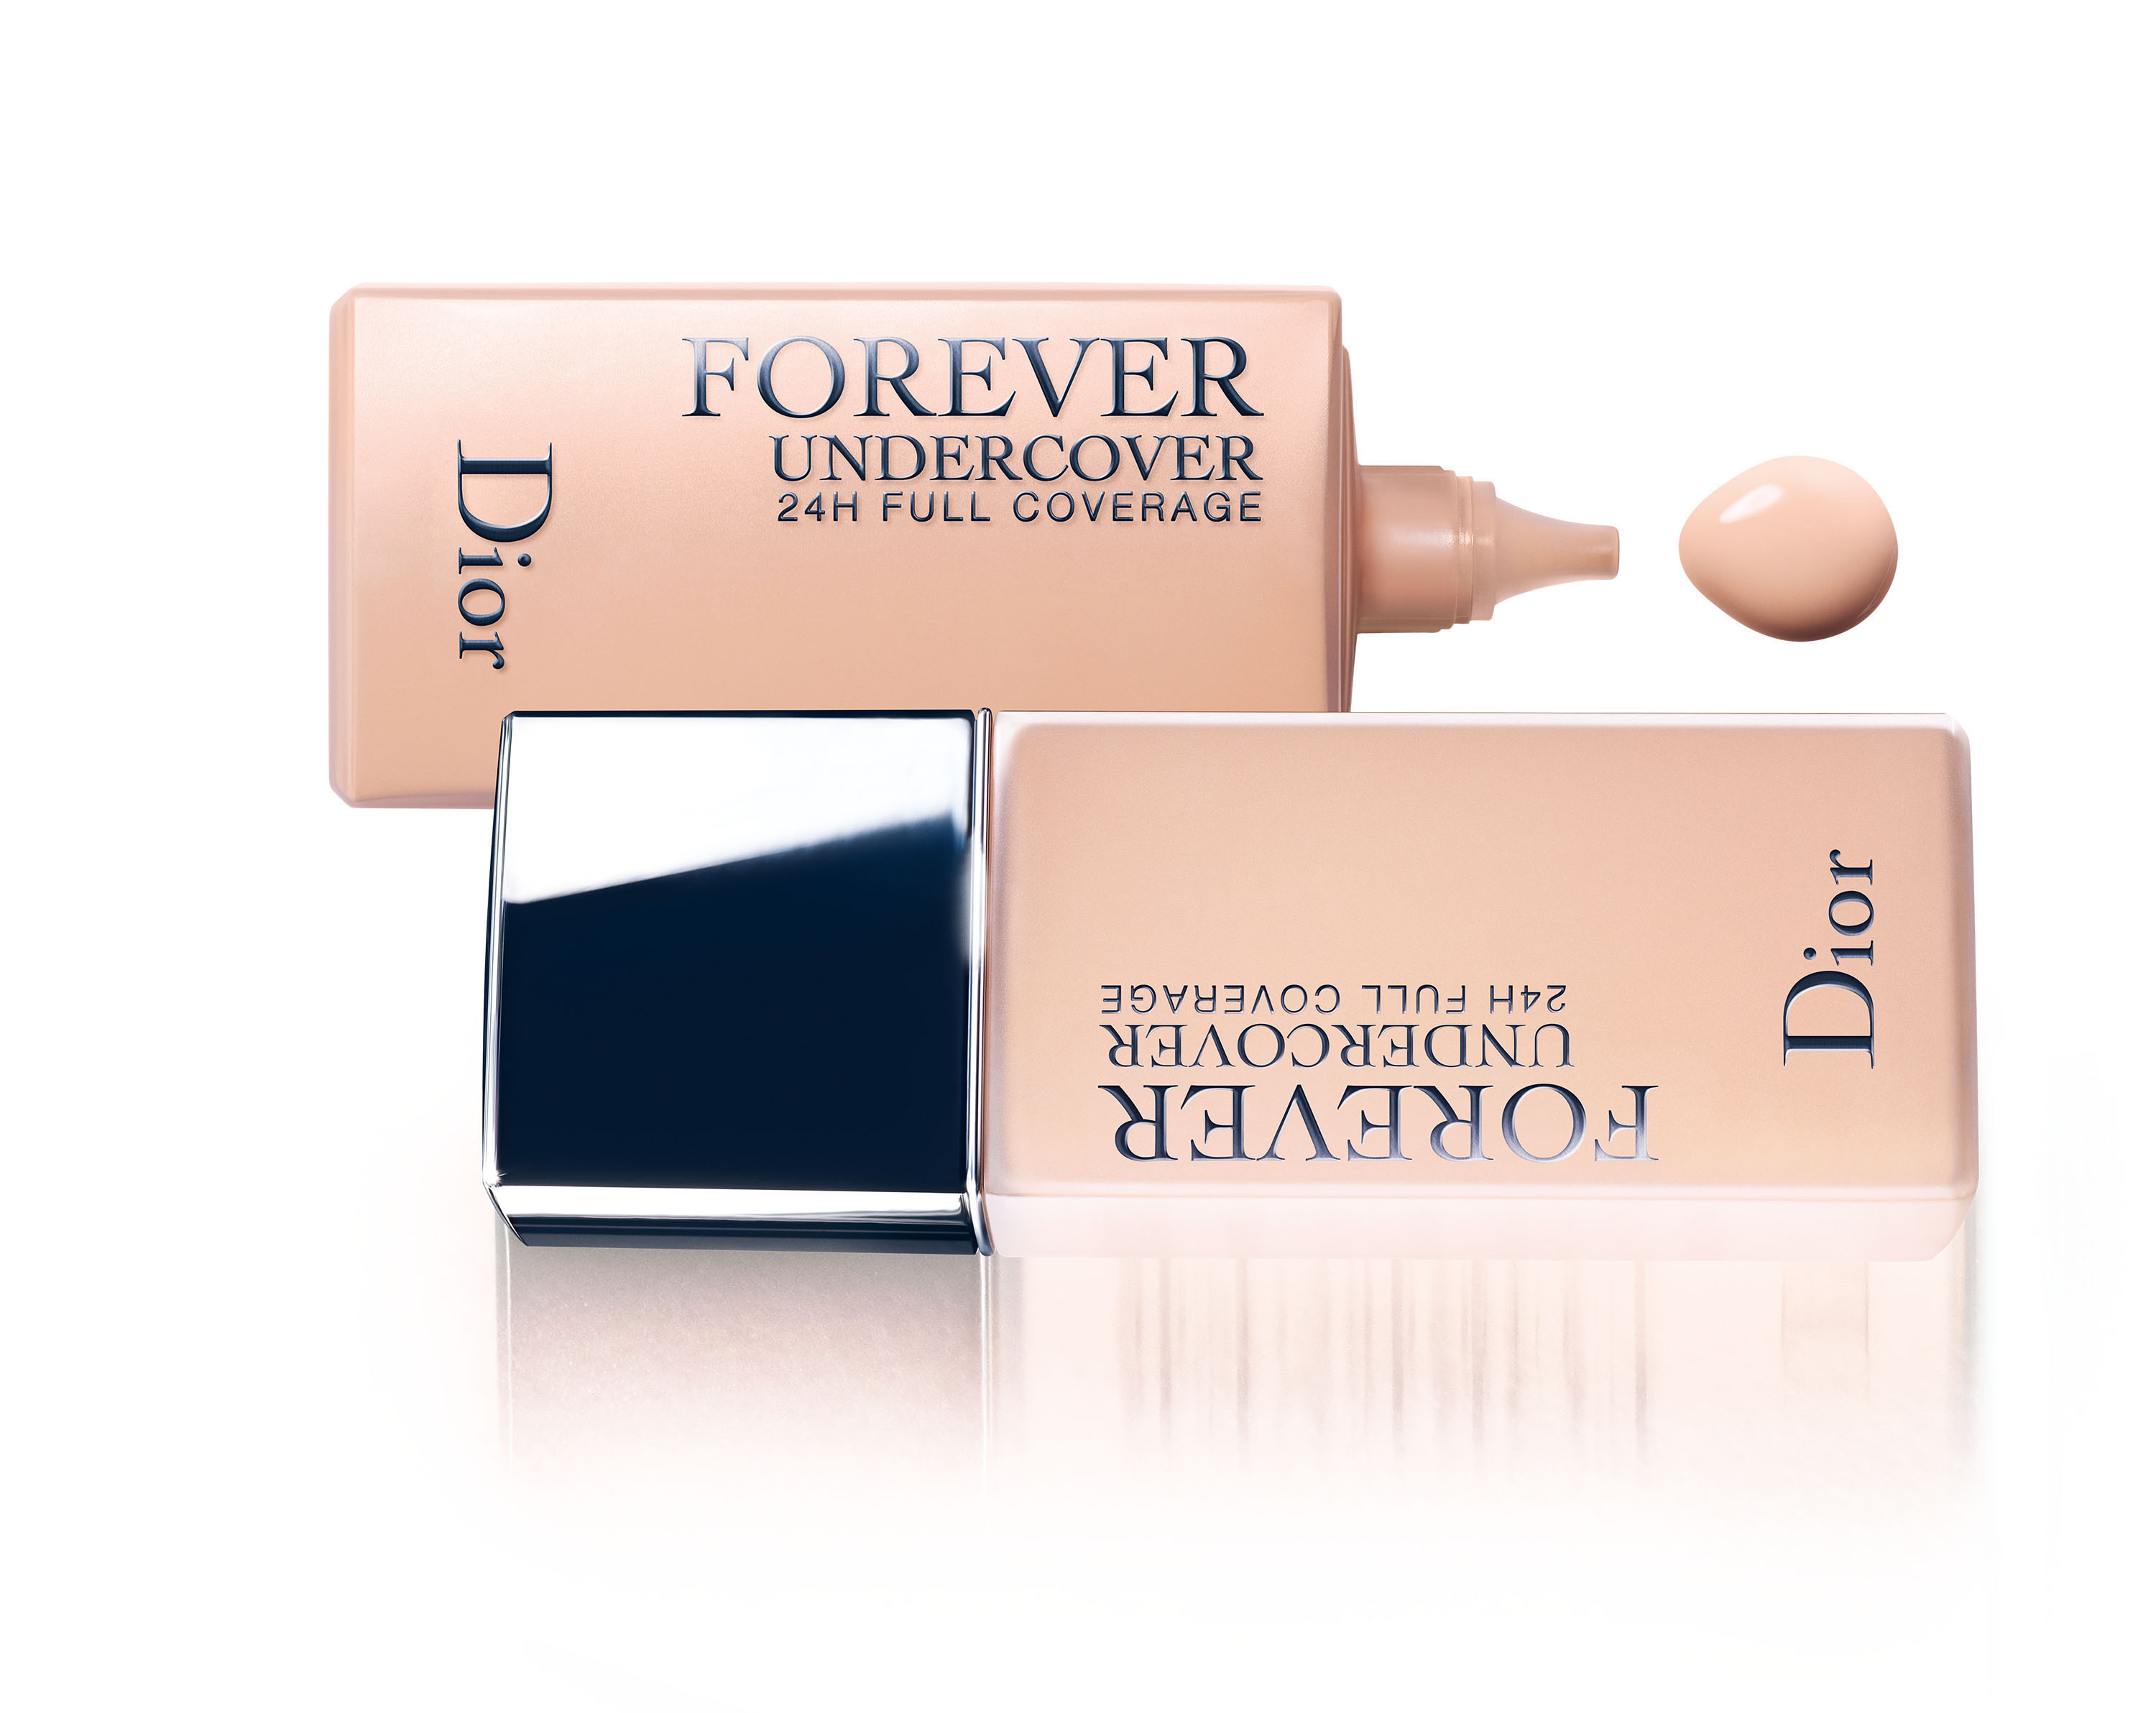 Dior foundation